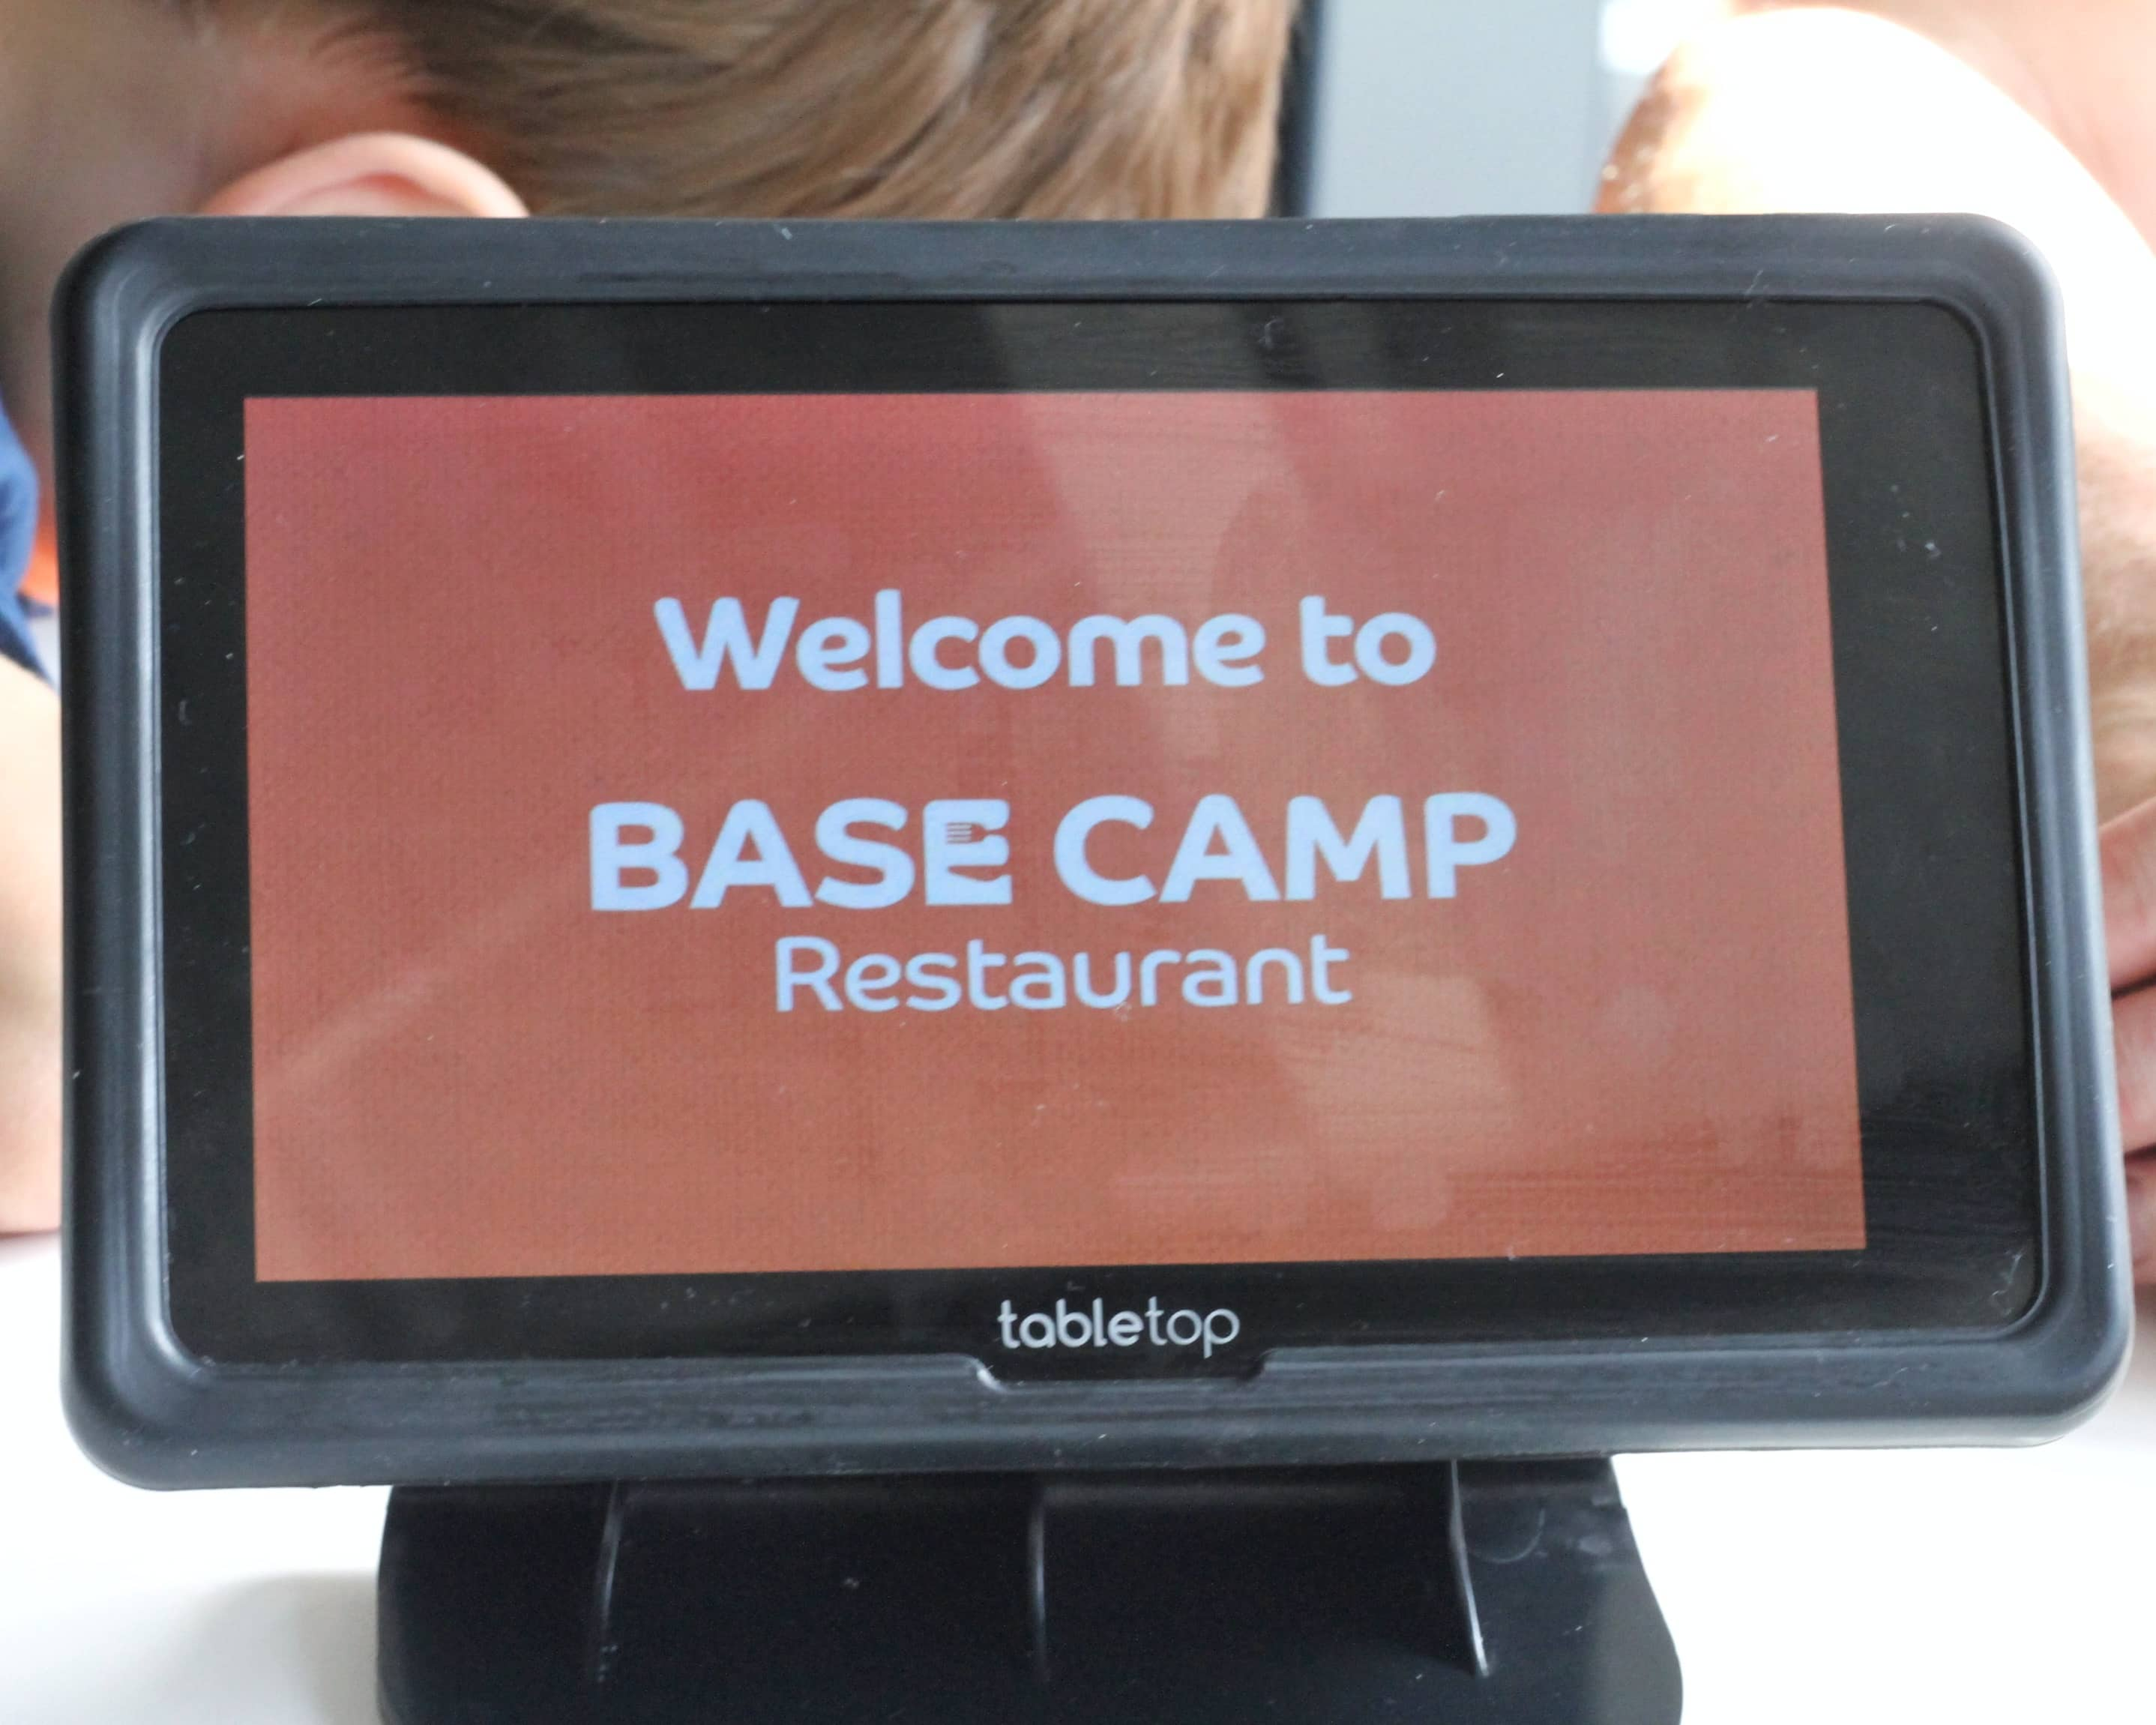 Tablet ordering sysytem at Base Camp restaurant, Whipsnade Zoo